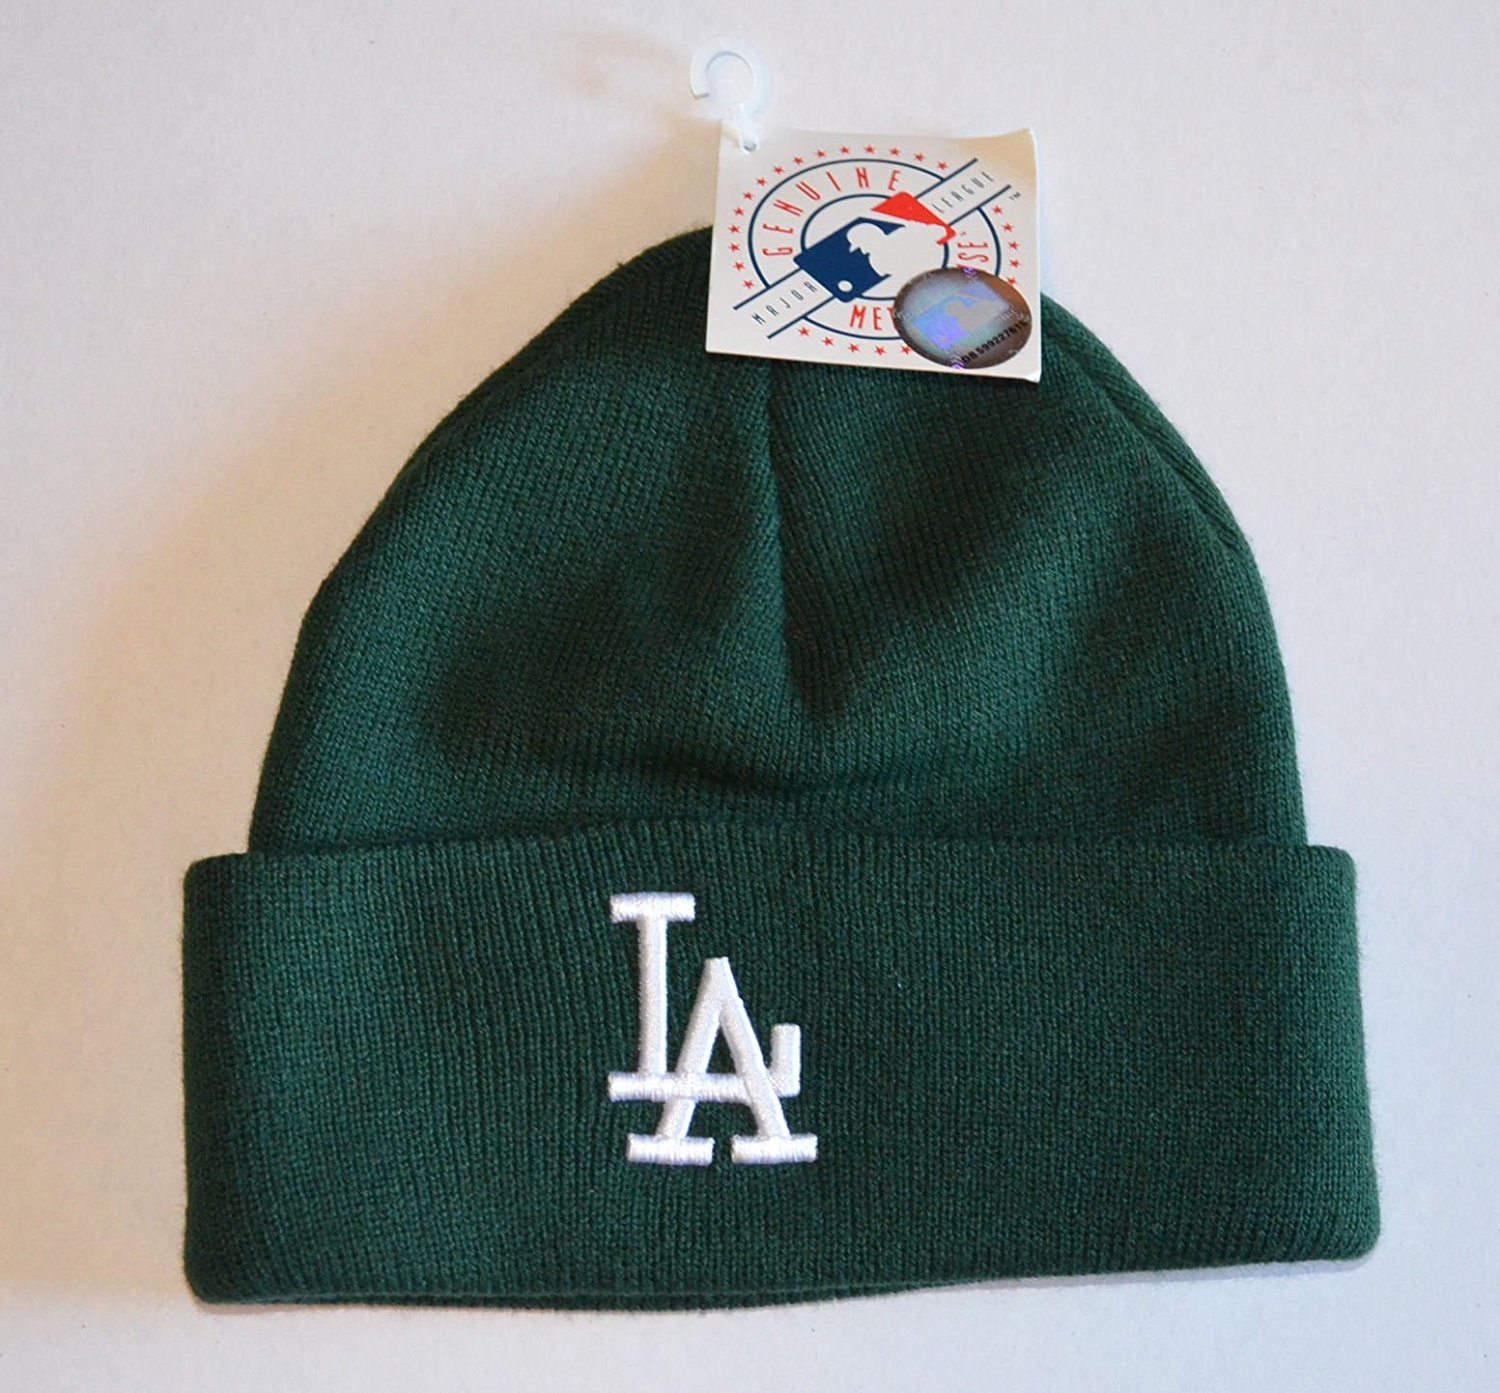 Get Quotations · Los Angeles Dodgers Green Beanie Hat - MLB LA Cuffed  Winter Knit Toque Cap 568c863220da